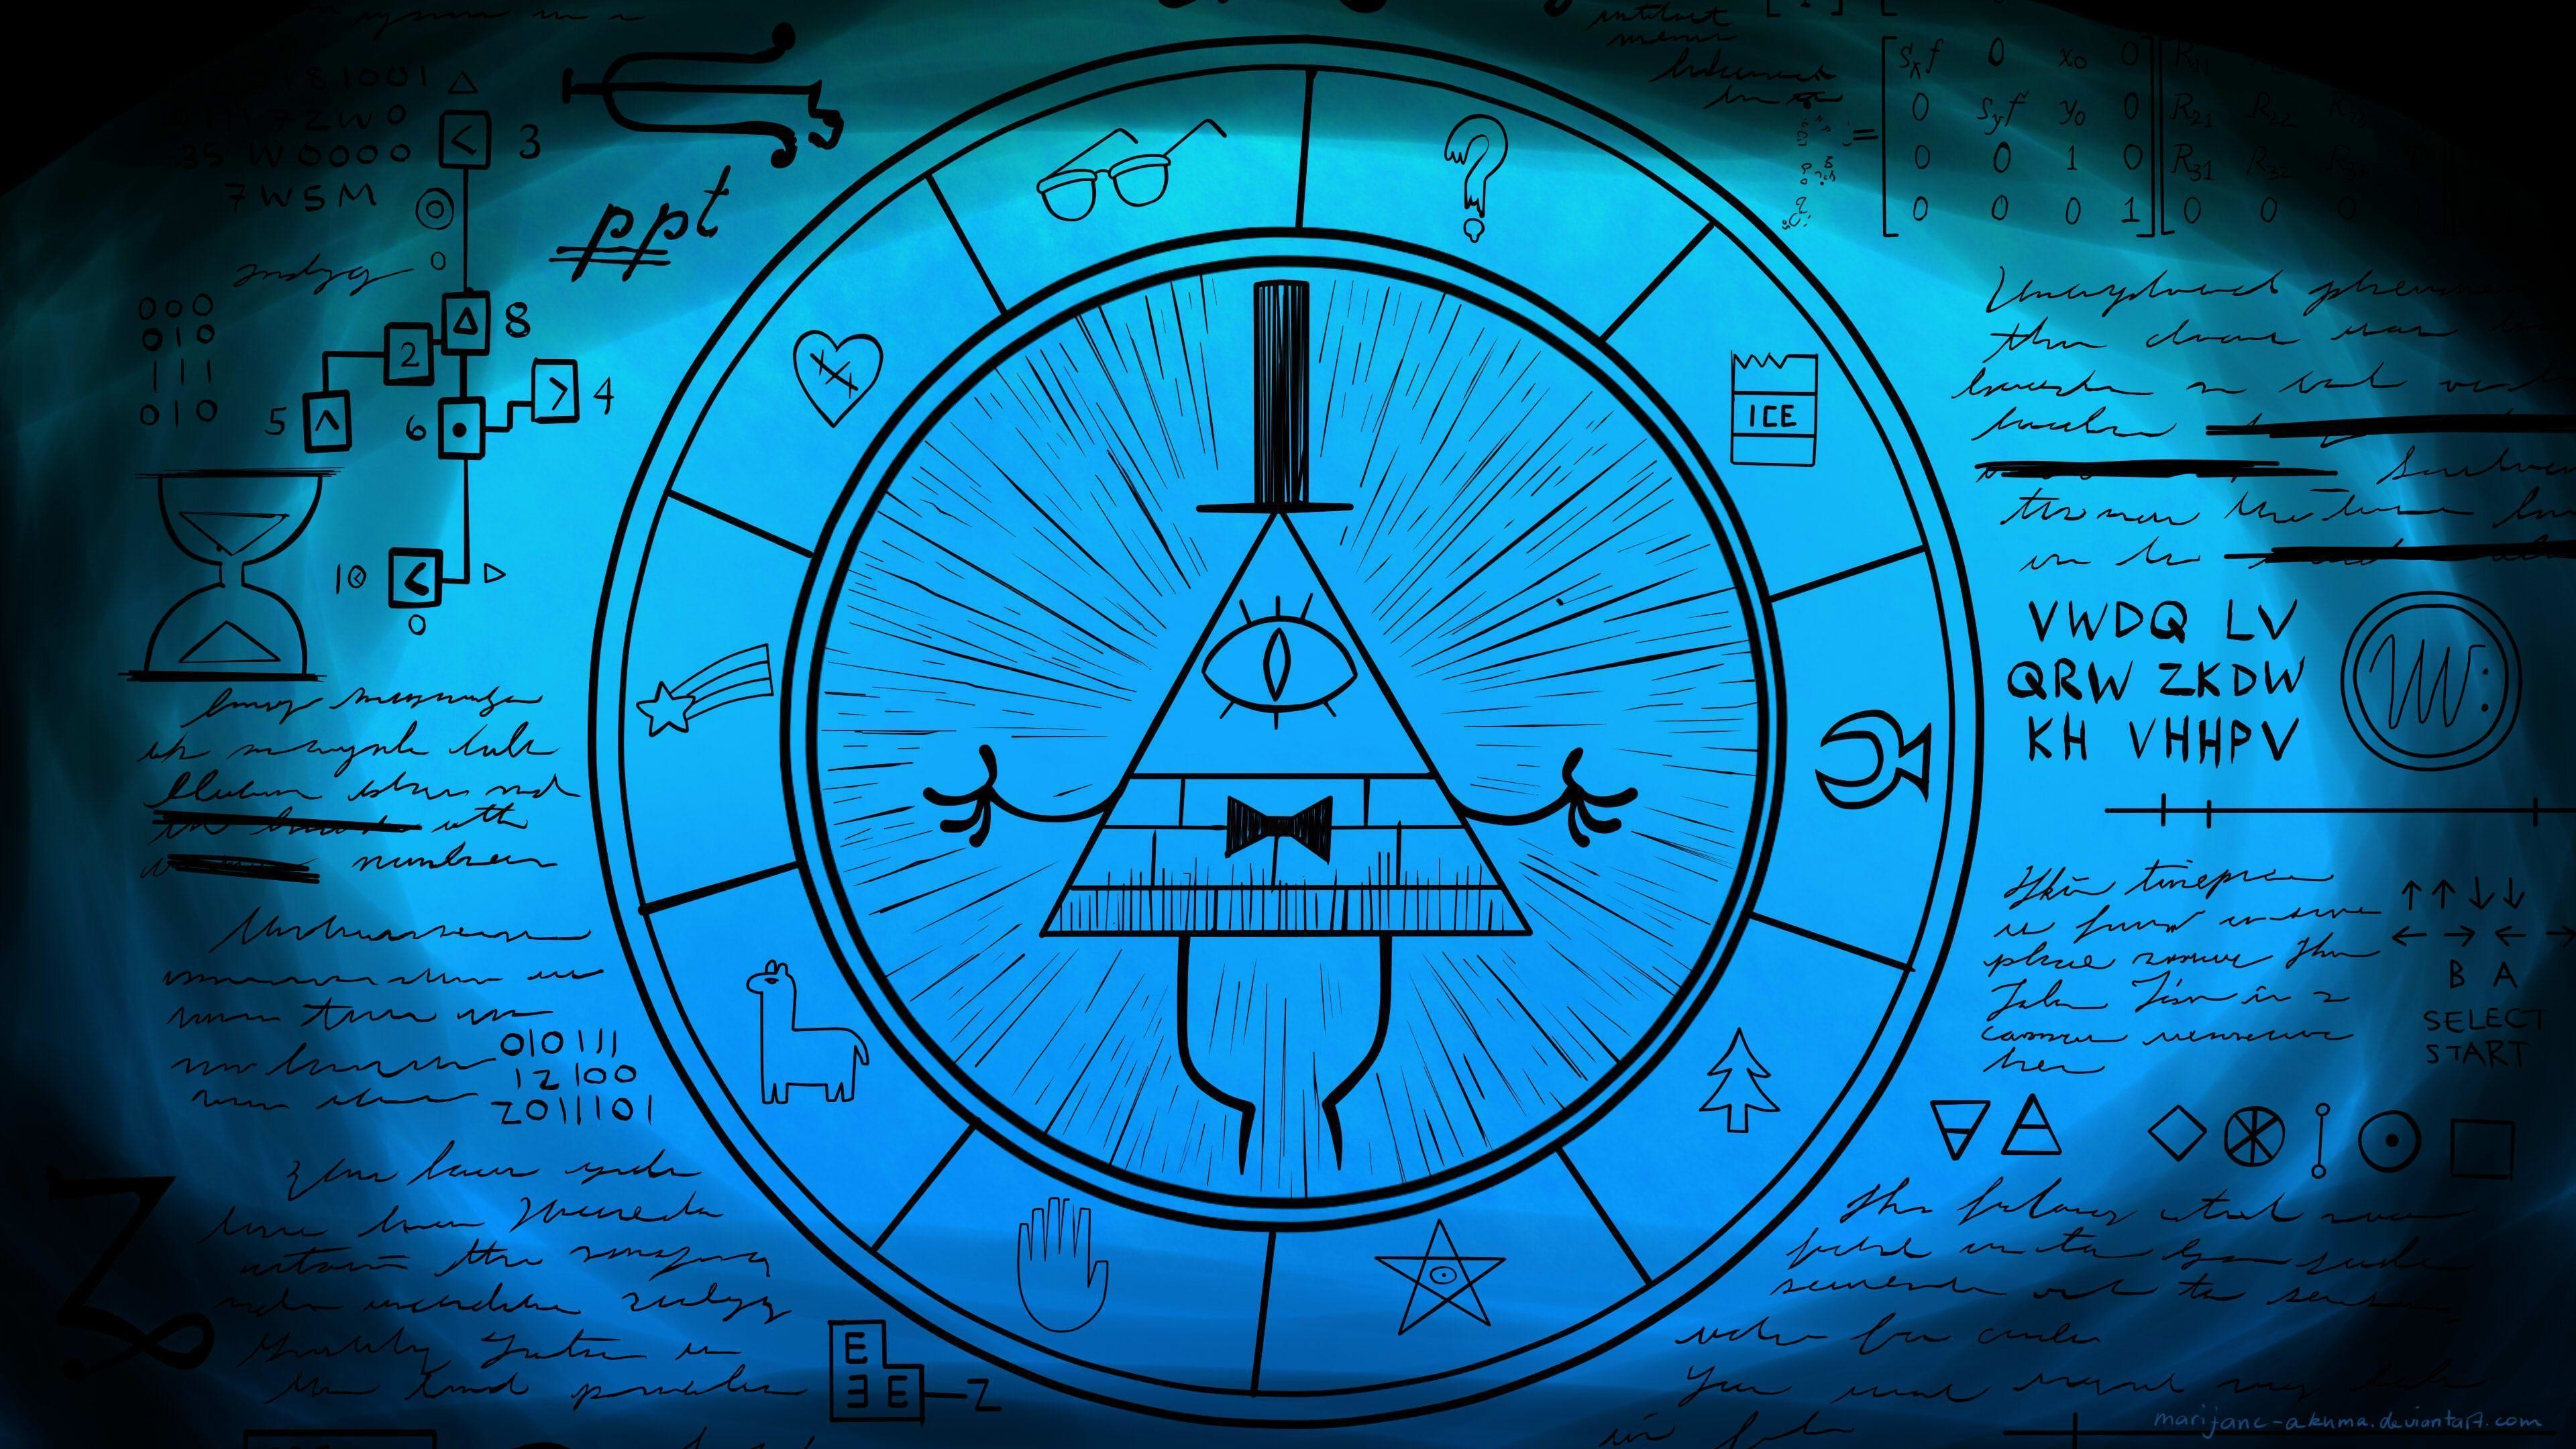 Gravity Falls Bill Wallpaper Iphone Bill Cipher Wheel Wallpaper 66 Images